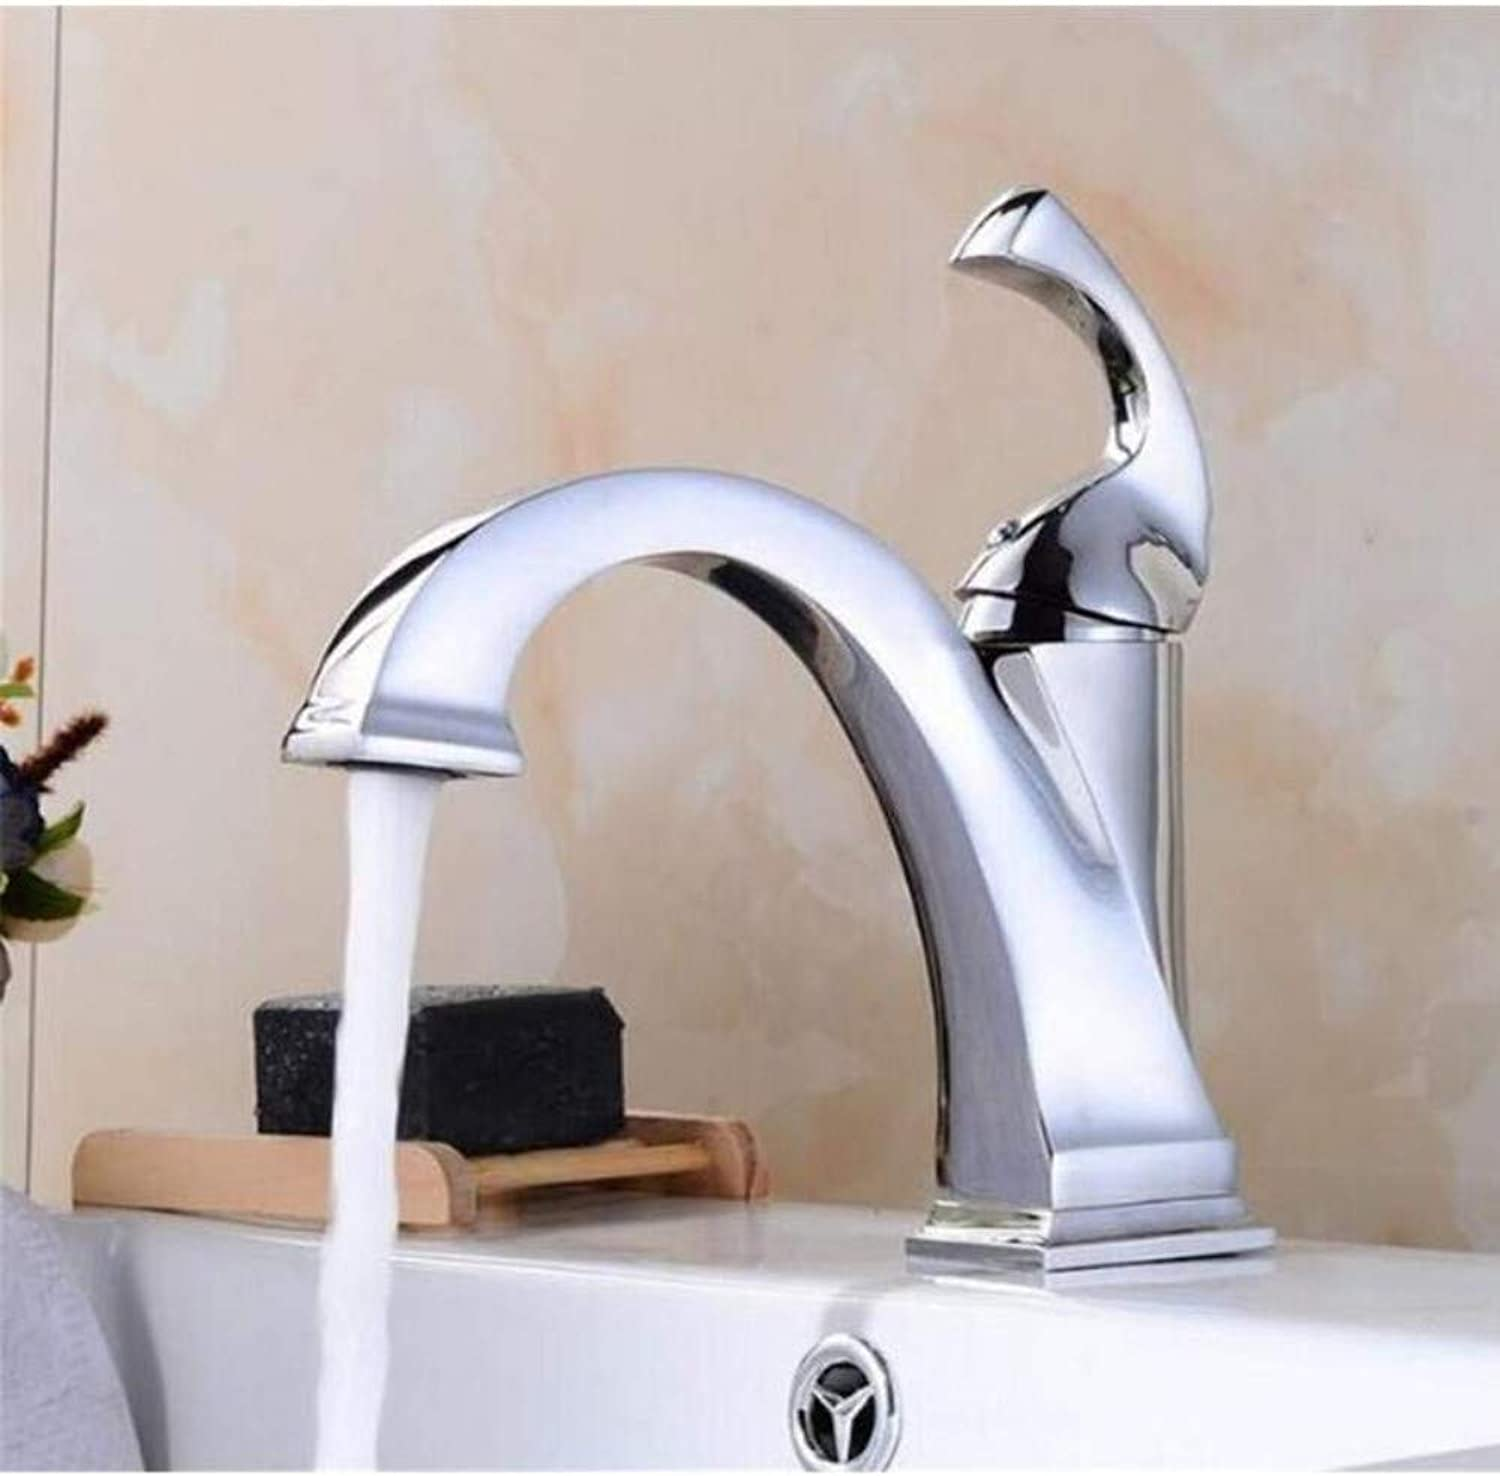 Brass Wall Faucet Chrome Brass Faucetfaucet Sink Mixer Taps Deck Mounted Single Holder Luxury Black Faucet